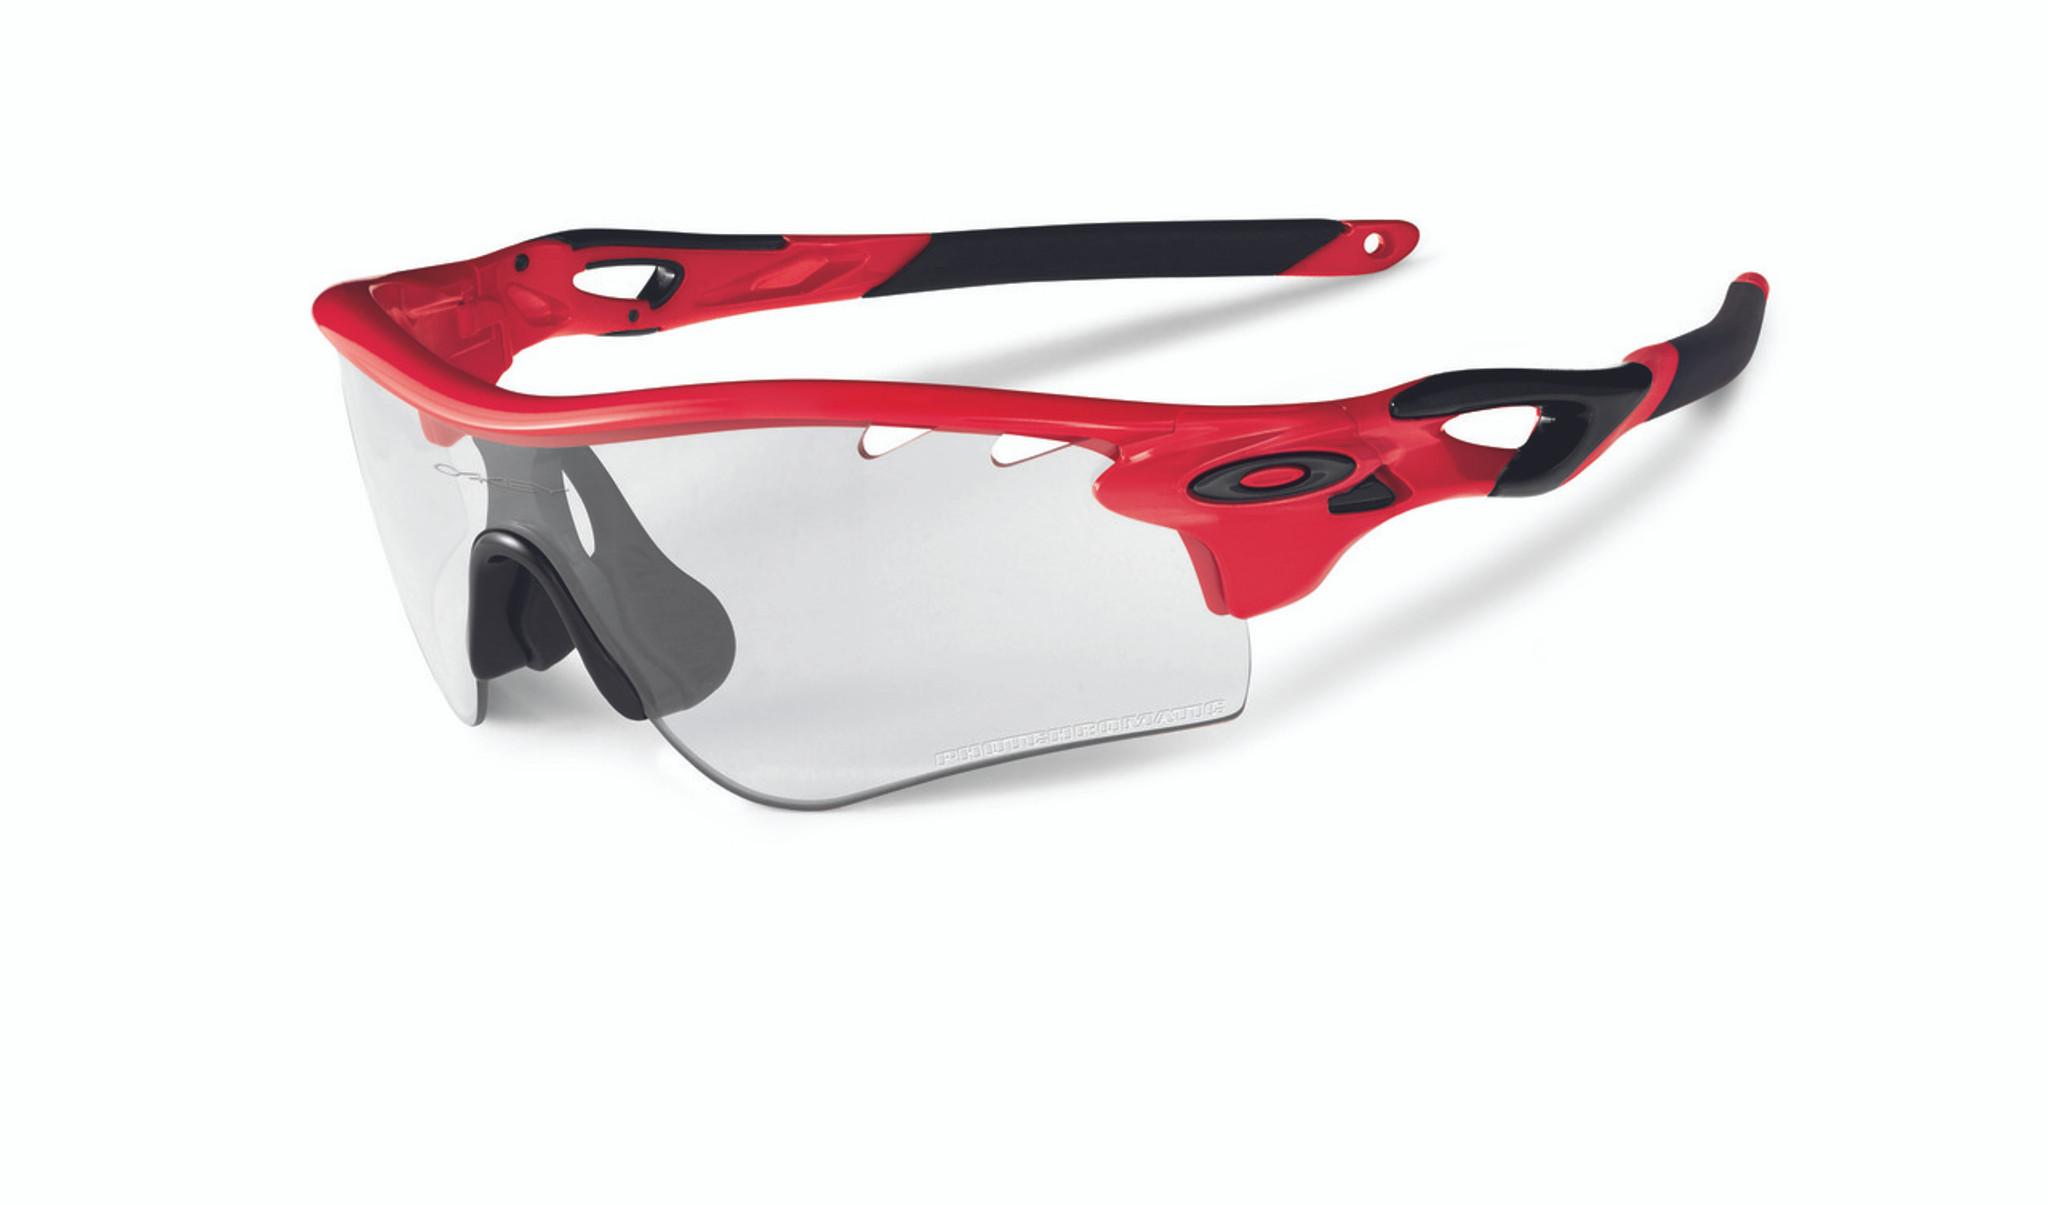 f894f8353d MyTriathlon - Oakley Sports Performance Sunglasses - Radarlock Path -  Infrared Frame - Clear Black Iridium Photochromic Vented Lens - OO9181-04